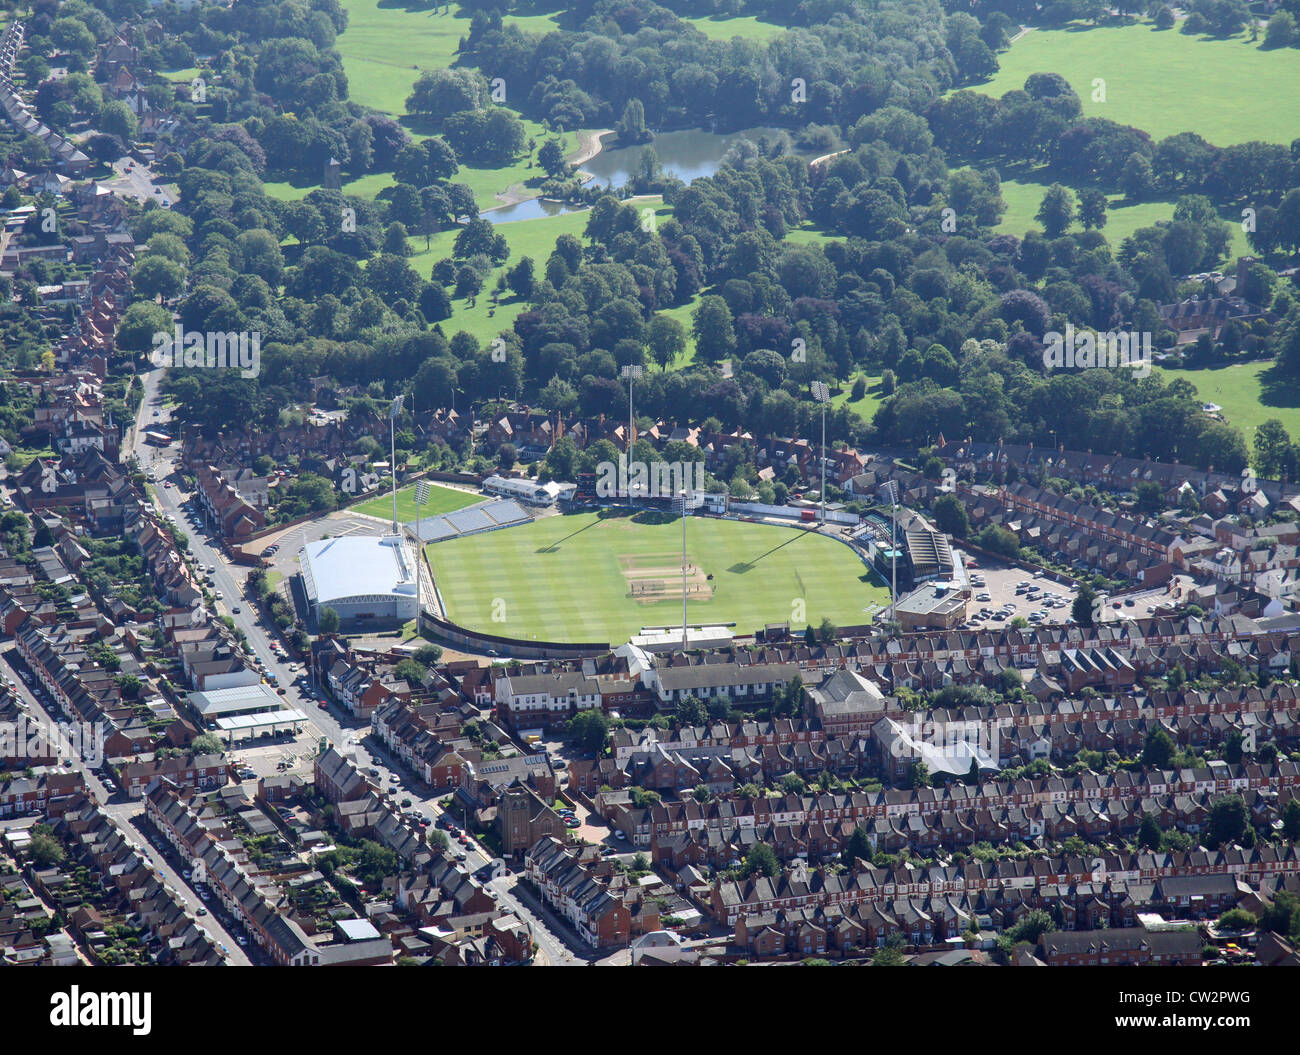 aerial view of Northamptonshire County Cricket Club ground, Northampton - Stock Image